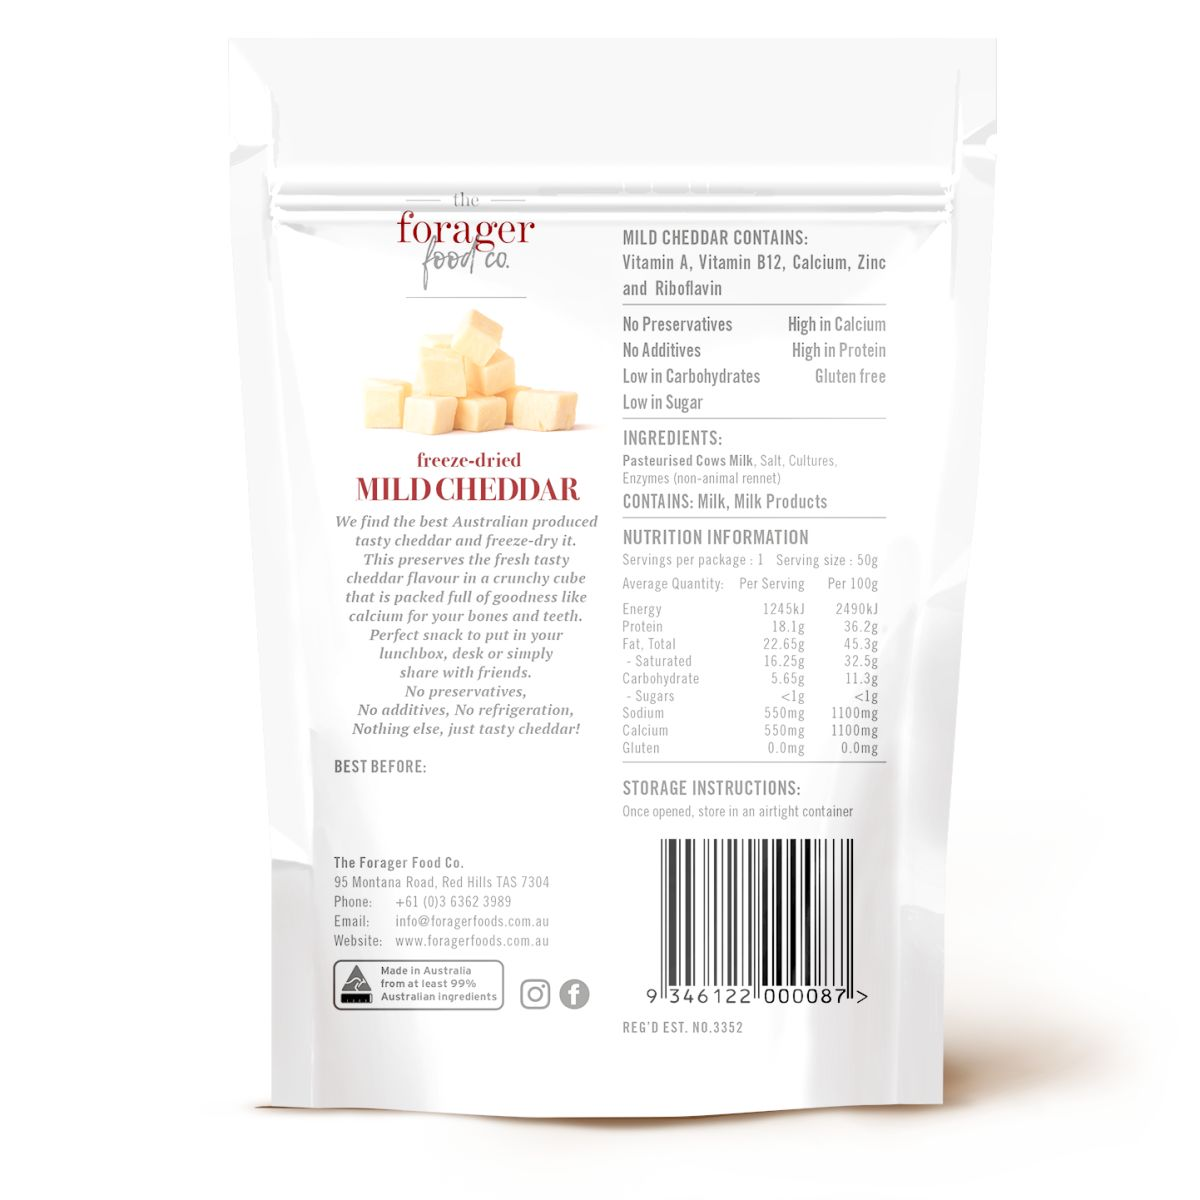 The Forager Food Co. - Freeze-Dried Mild Cheddar Cheese